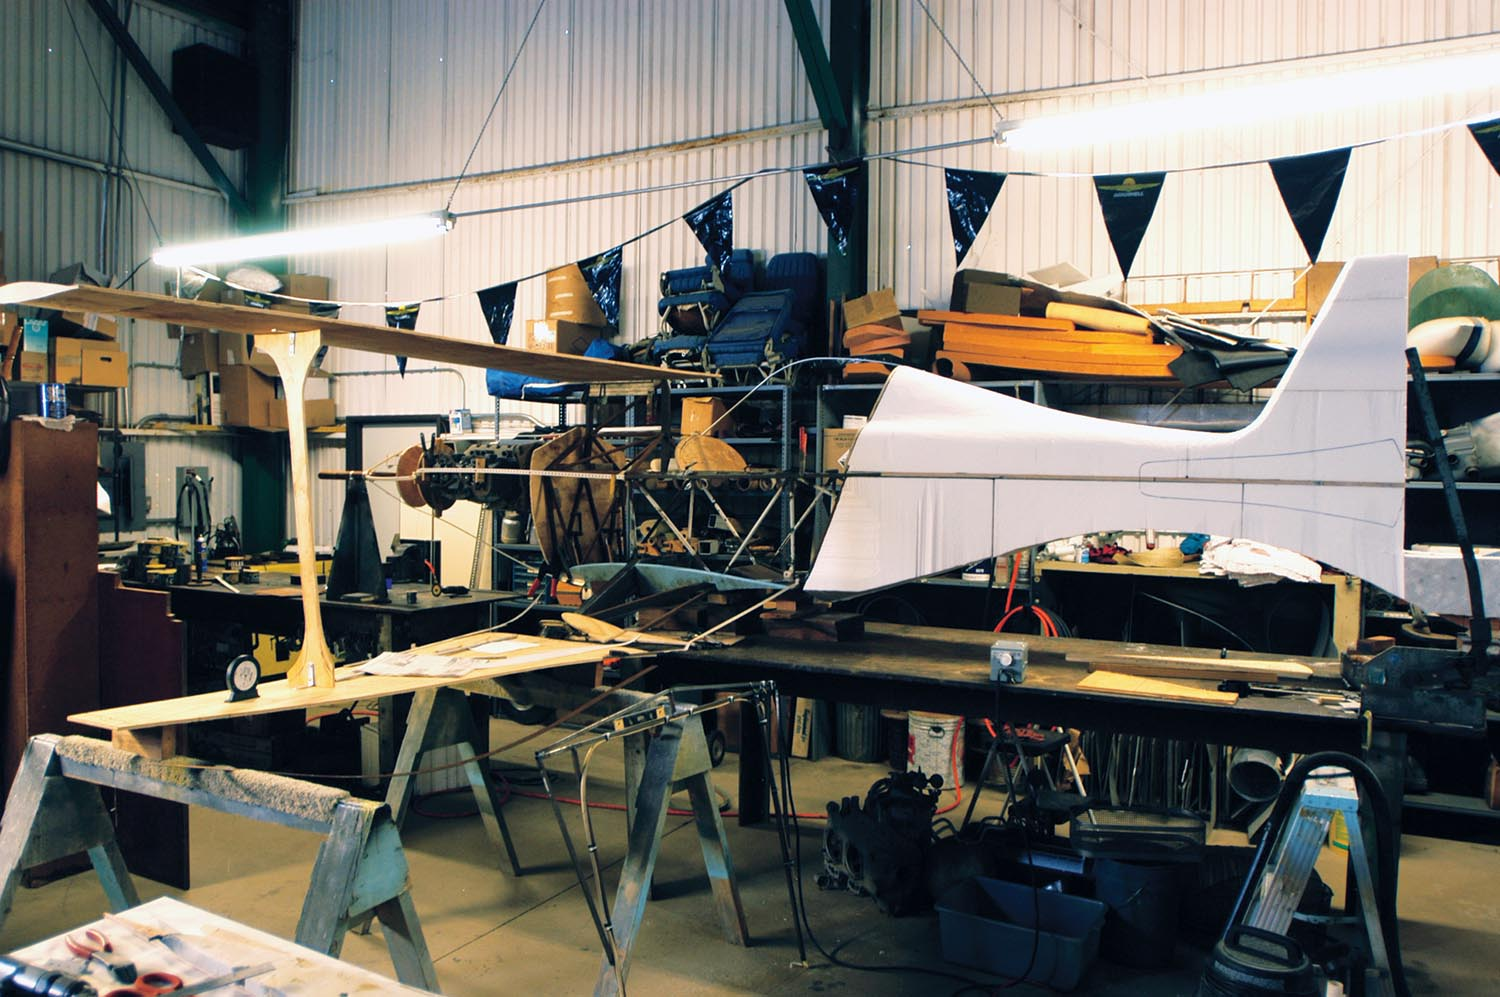 Part airplane, part mock-up is how Phantom began on the Aberle Custom Aircraft welding bench. Plywood added to the Mong Sport fuselage visualized the completed racer; eventually the plywood was replaced by carbon fiber structures.